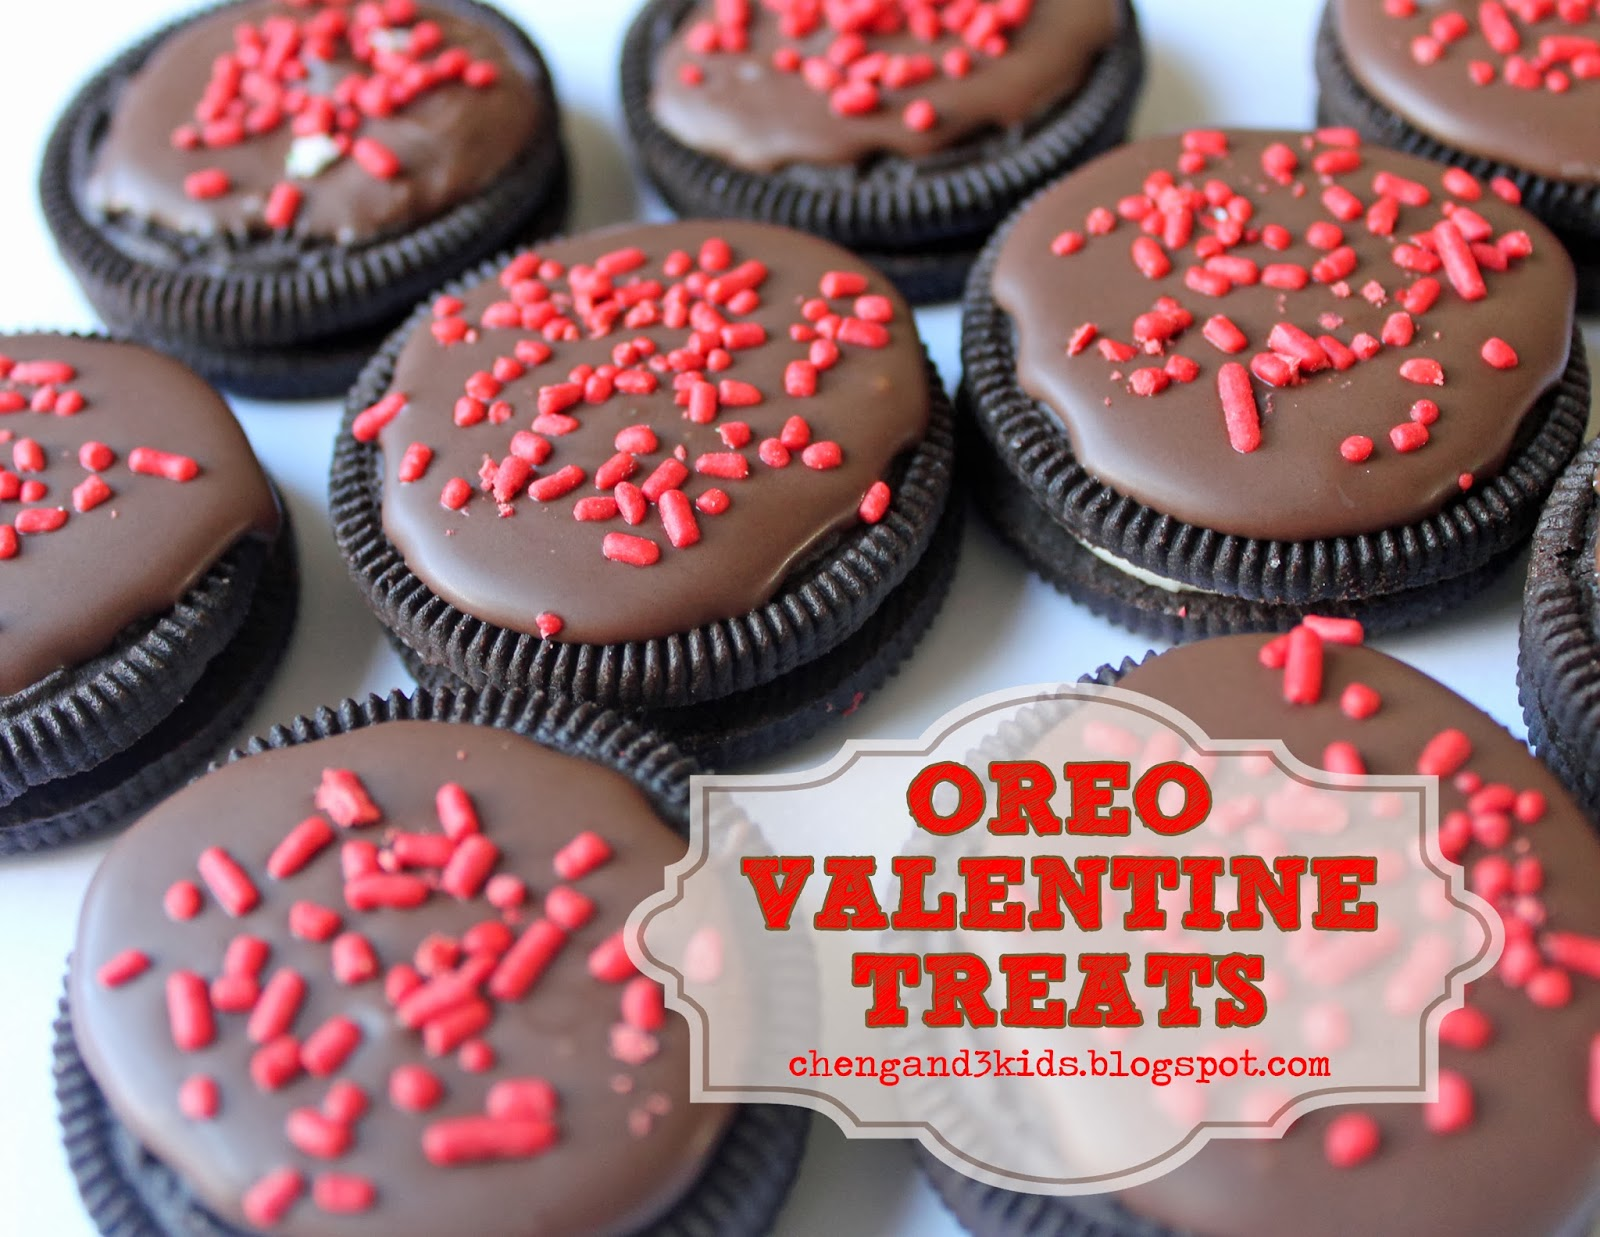 Oreo Valentine Treats by chengand3kids.blogspot.com